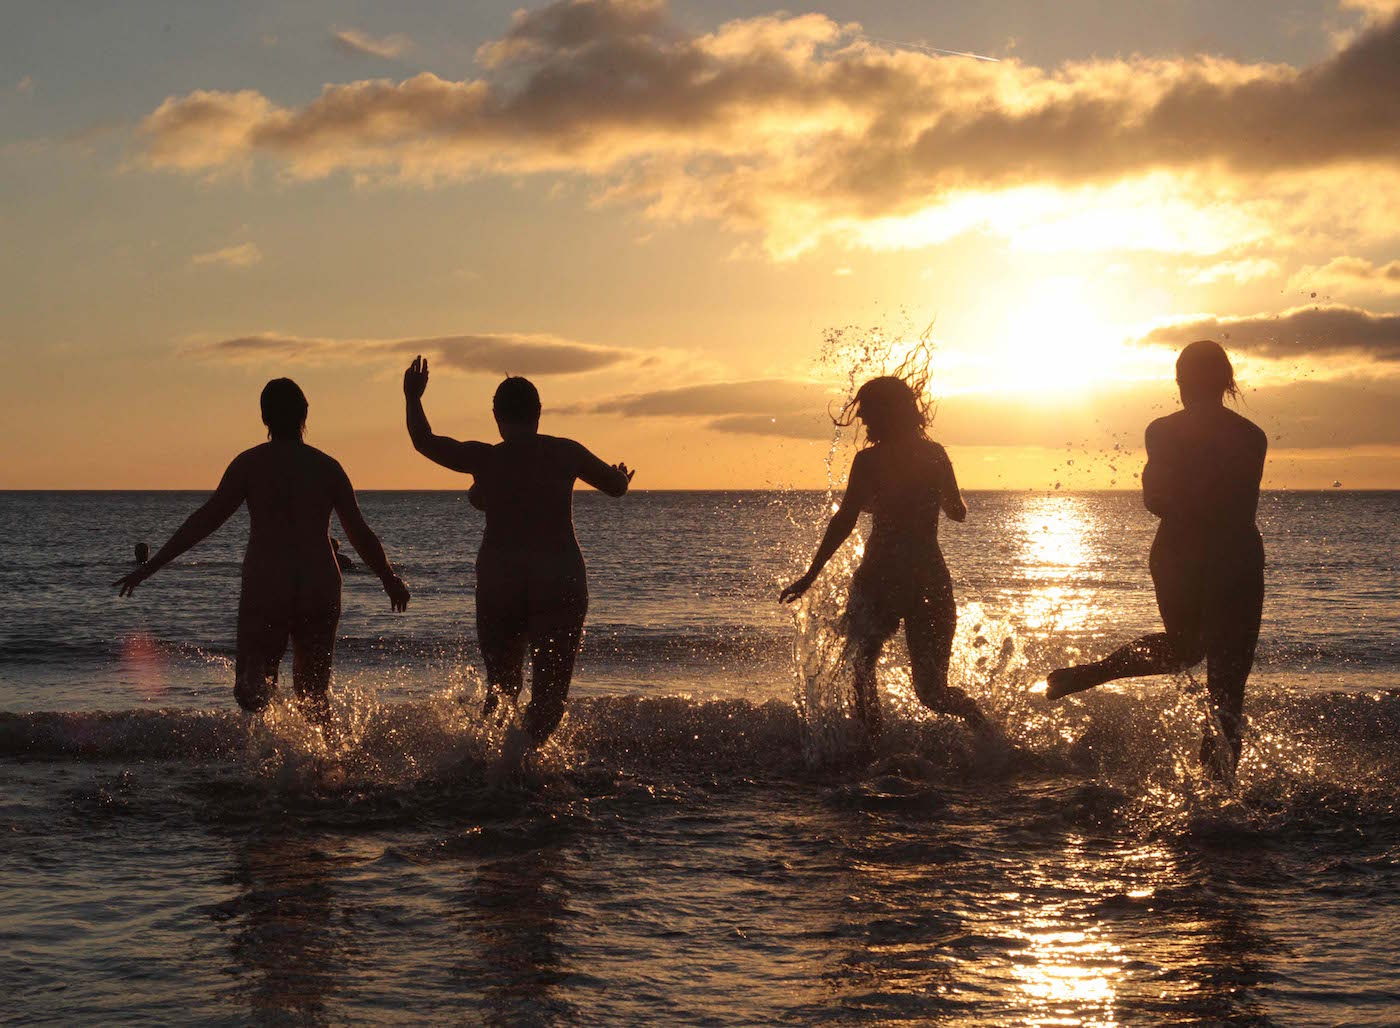 Nudists take part in the annual North East Skinny Dip as the sun rises at Druridge Bay in Northumberland, northeast England on September 22, 2013. Around 200 bathers once again braved the cold in an attempt to break the world record for the largest skinny-dip. AFP PHOTO / LINDSEY PARNABY (Photo credit should read LINDSEY PARNABY/AFP/Getty Images)